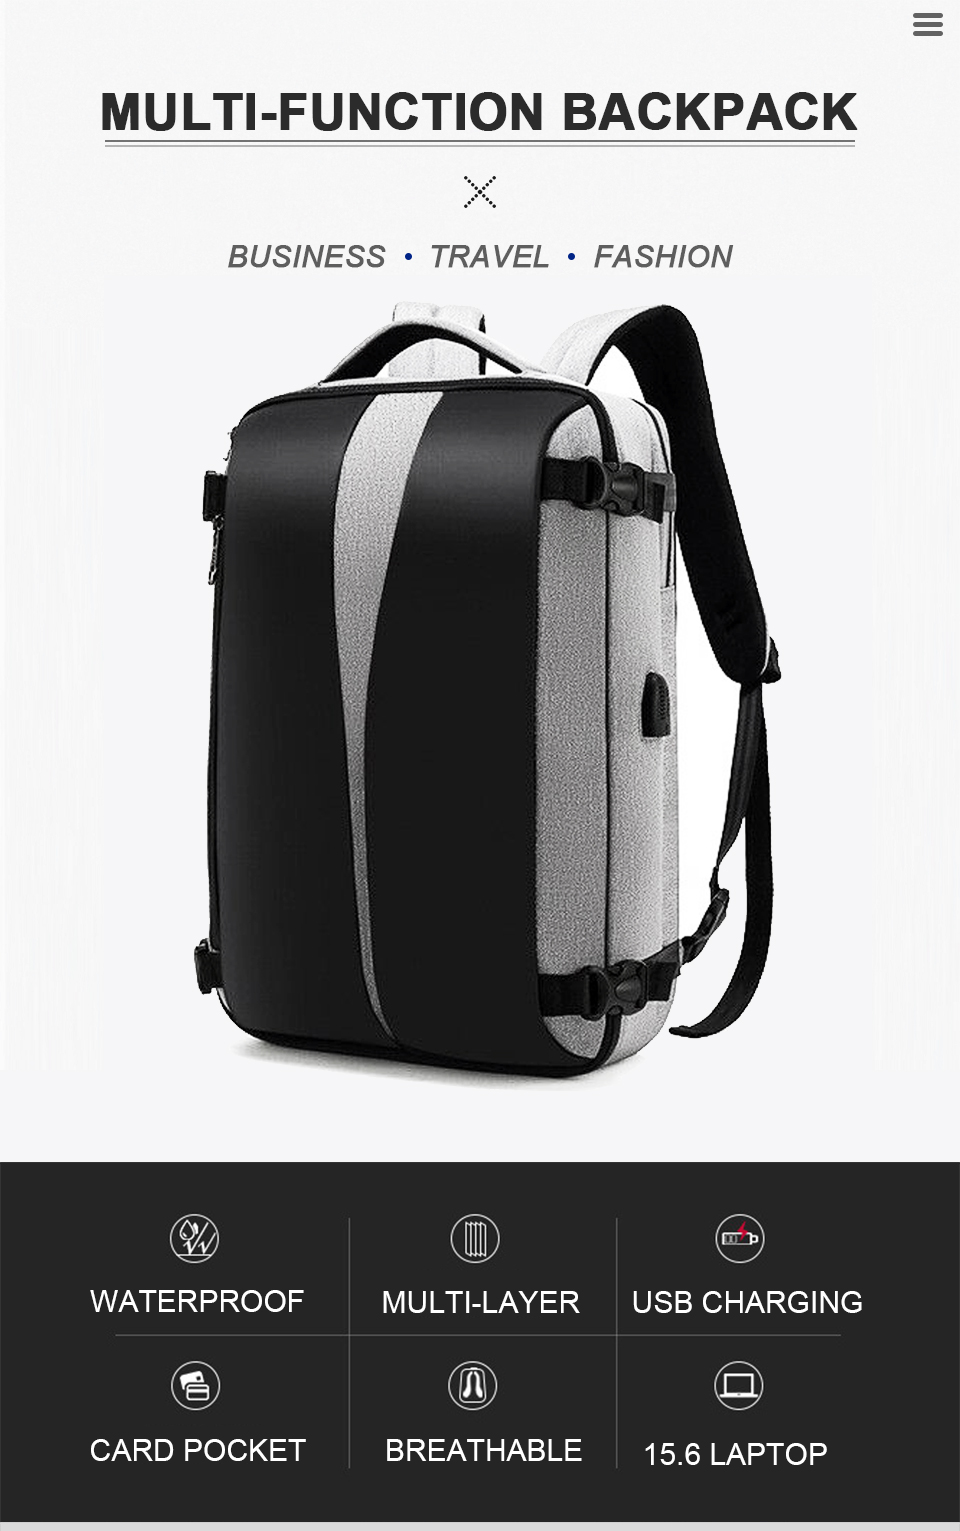 Men Backpack Anti Theft Travel Bagpack Laptop 15.6 Inch Notebook Waterproof Bags USB Charging Male Business Fashion Unisex Bag (1)